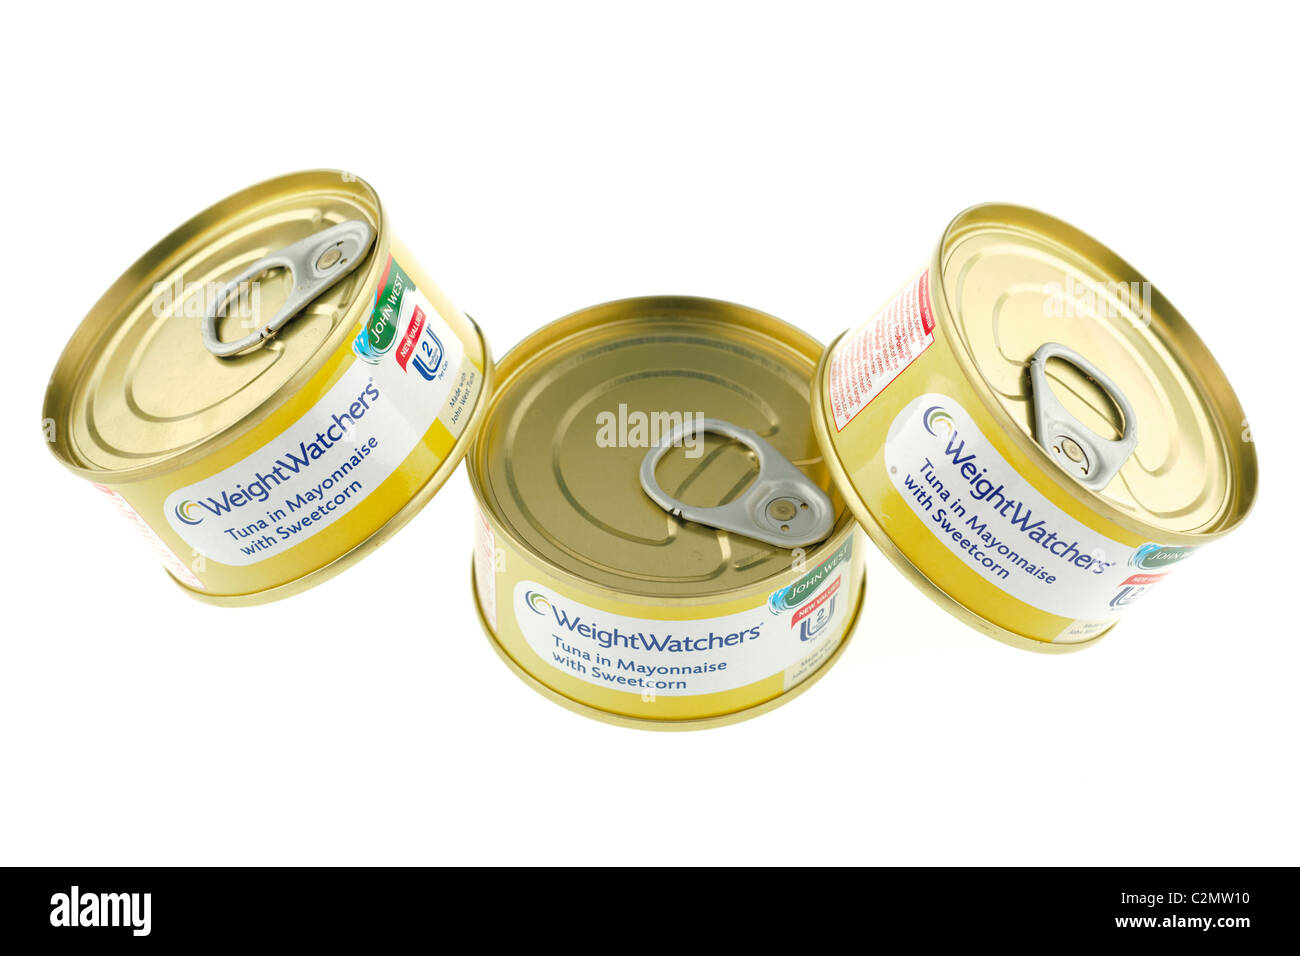 Three cans of Weight Watchers tuna in Mayonnaise with sweetcorn - Stock Image